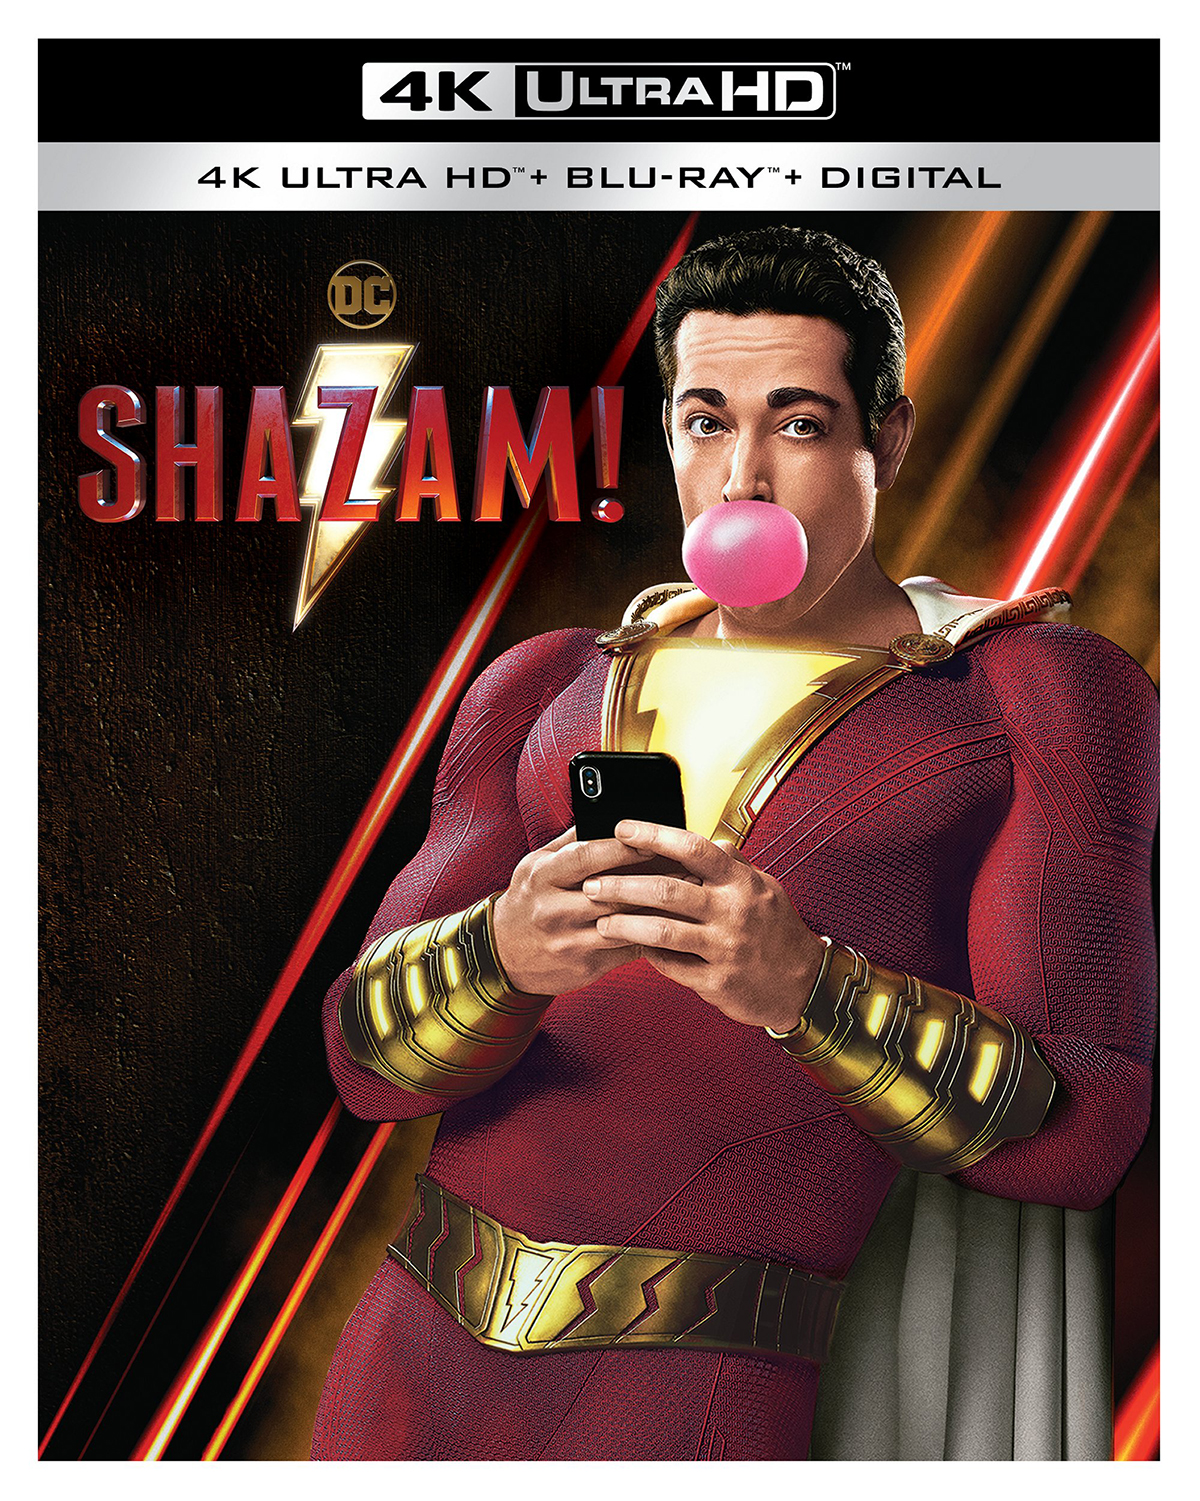 Shazam Blu Ray: Shazam! Blu-ray And Digital Release Dates, Details Revealed